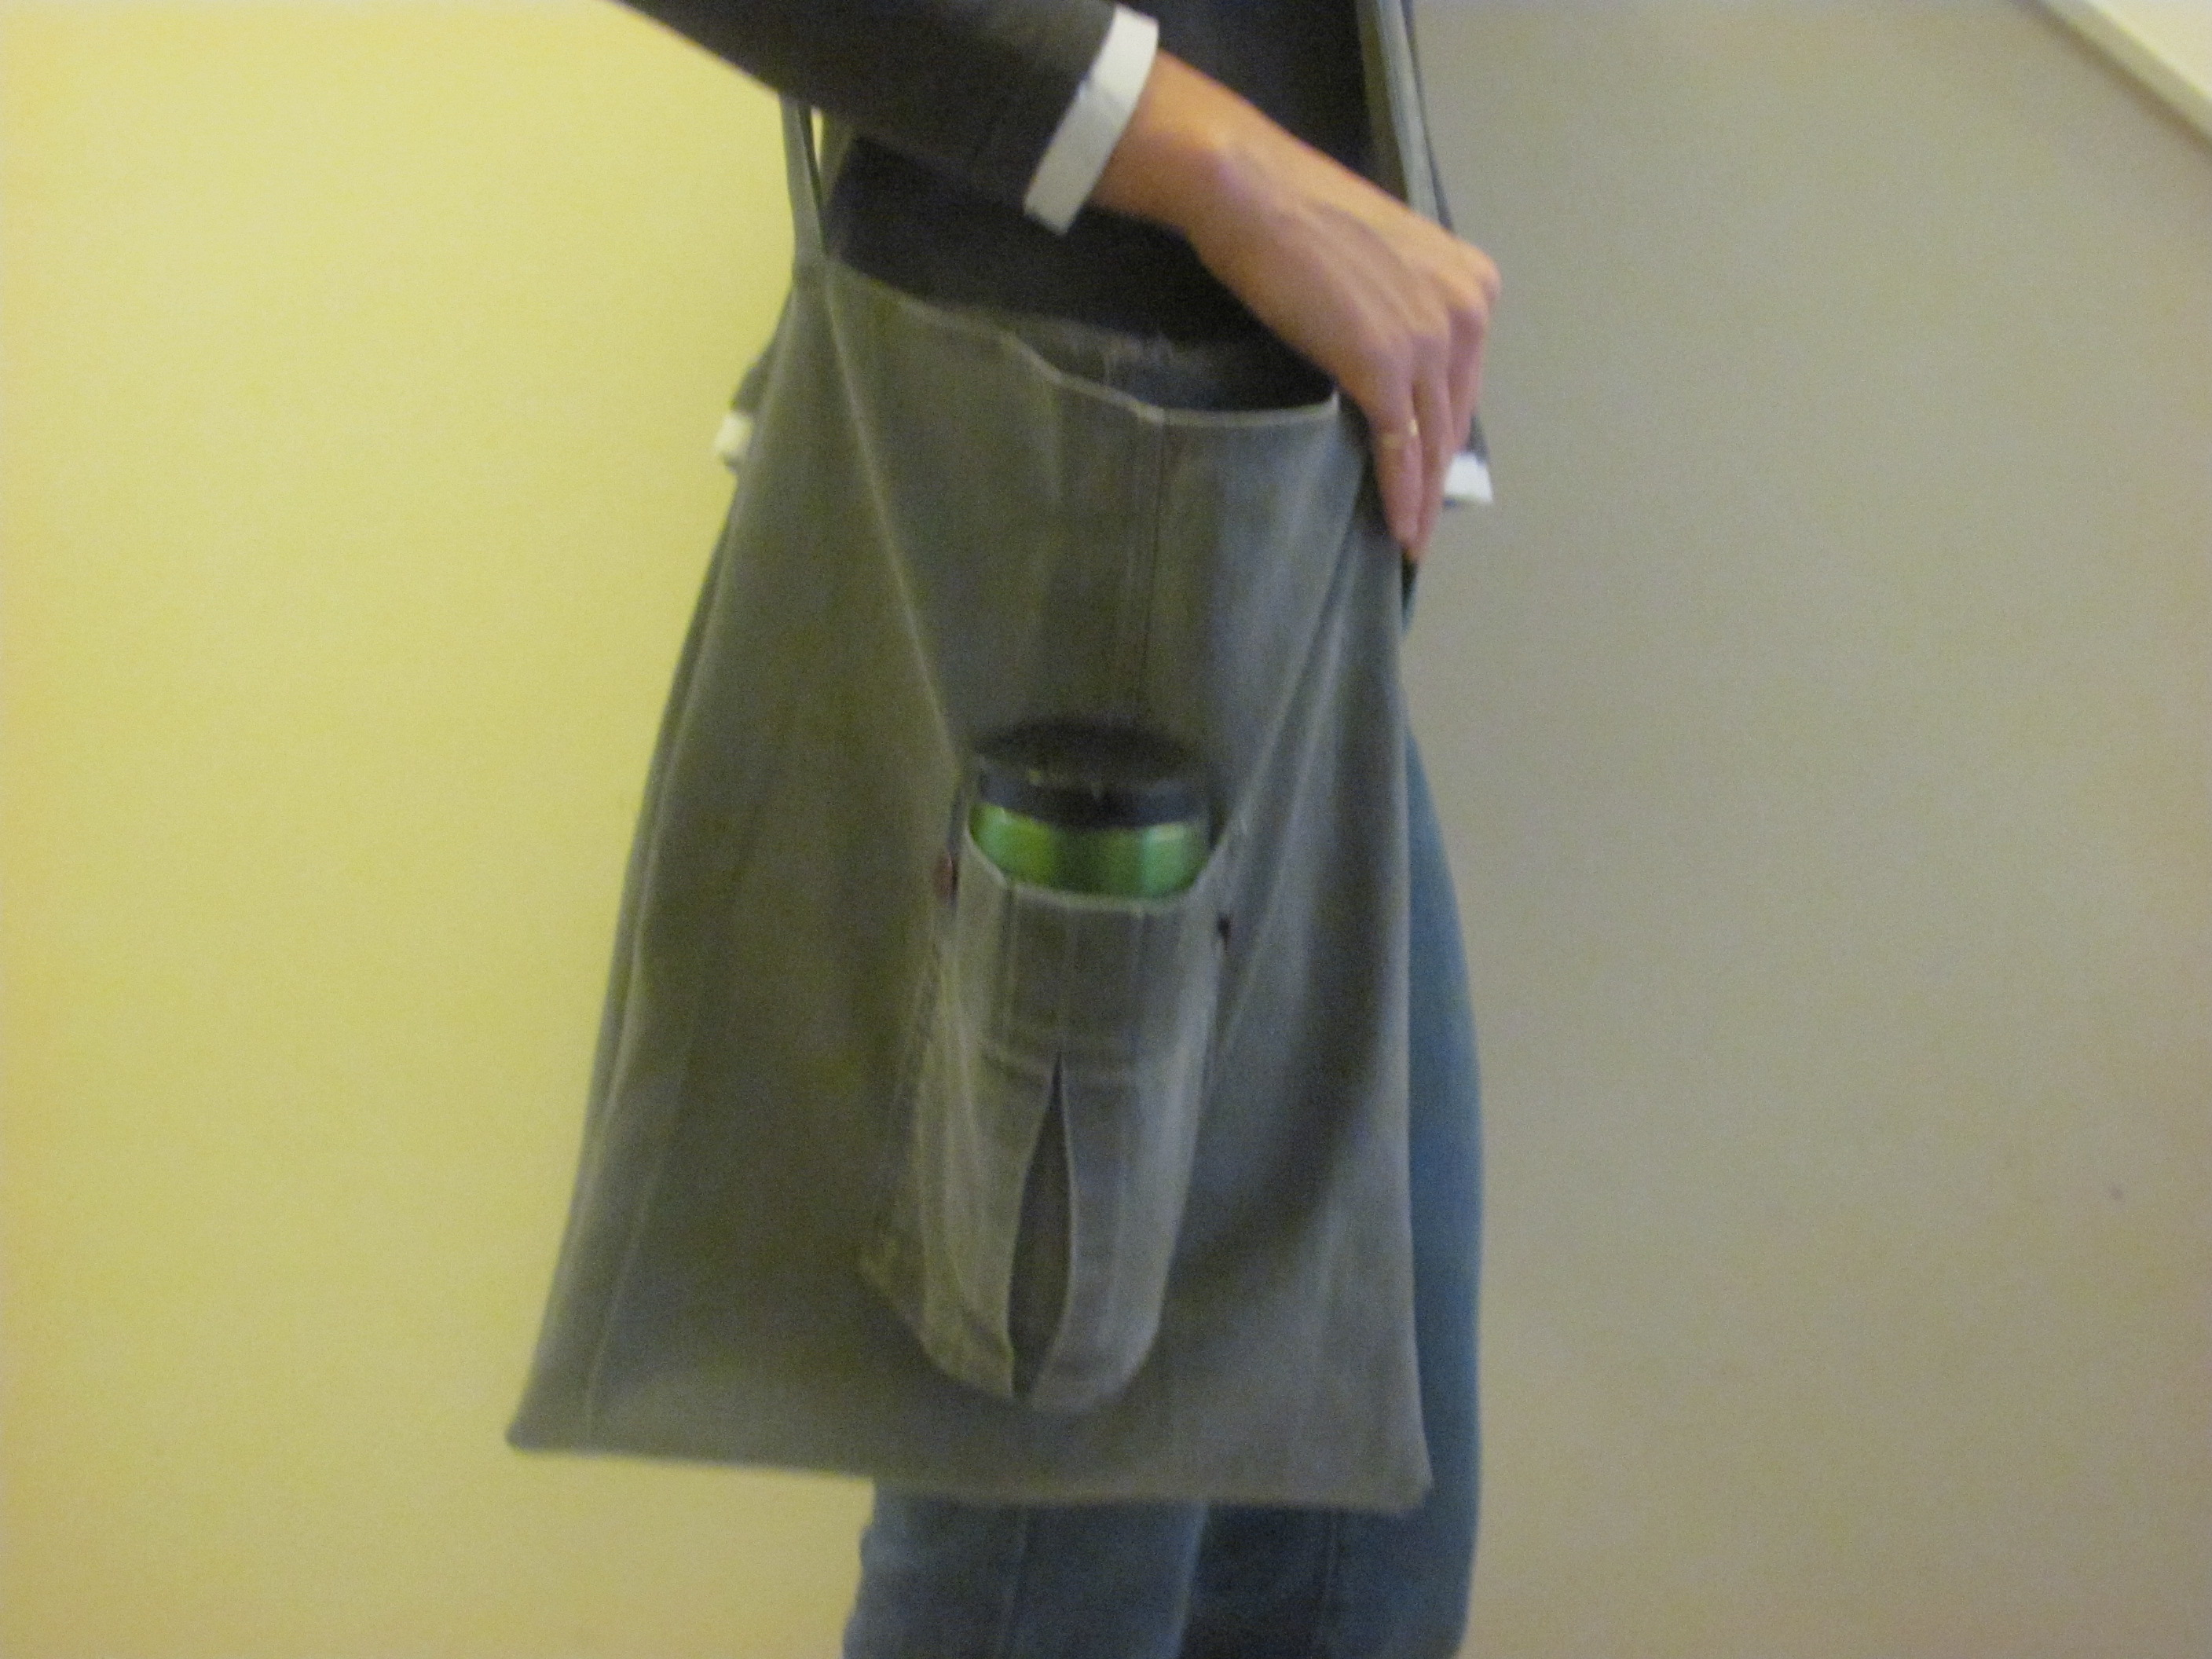 DIY Pants to Purse: Turn Your Old Jeans into a Shoulder Bag